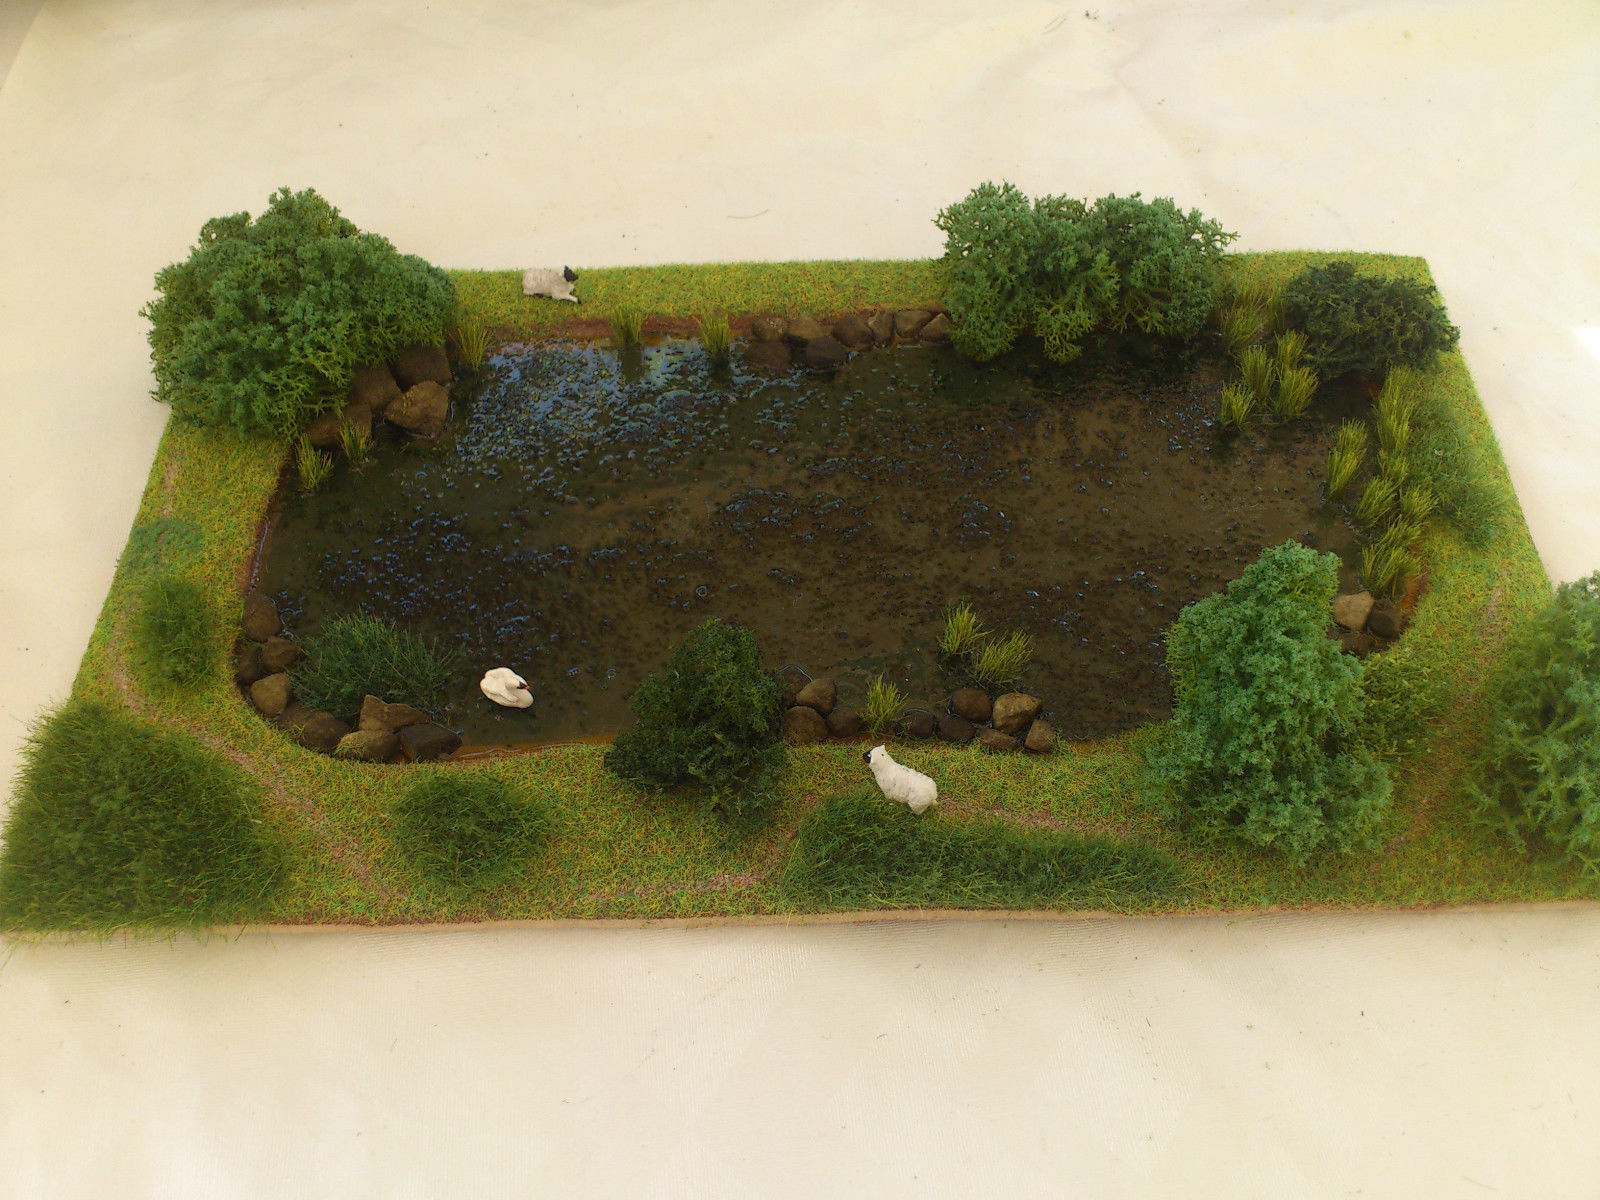 Lake diorama using our scenery products